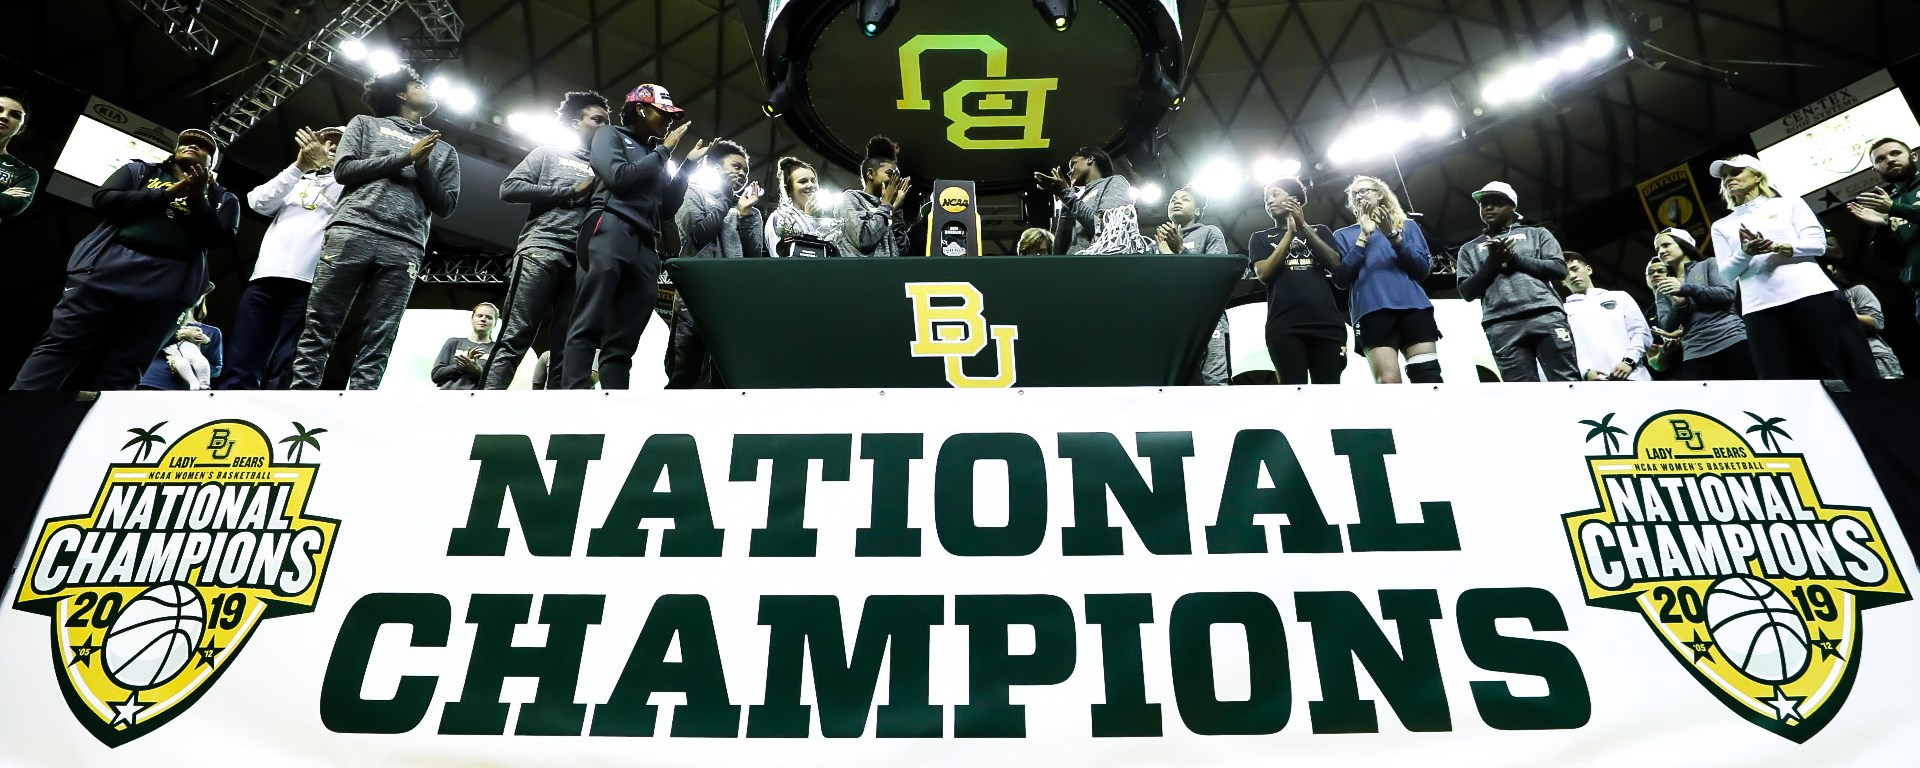 1bf2238744cb63 THOUSANDS WELCOME BACK NATIONAL CHAMPS - Baylor University Athletics